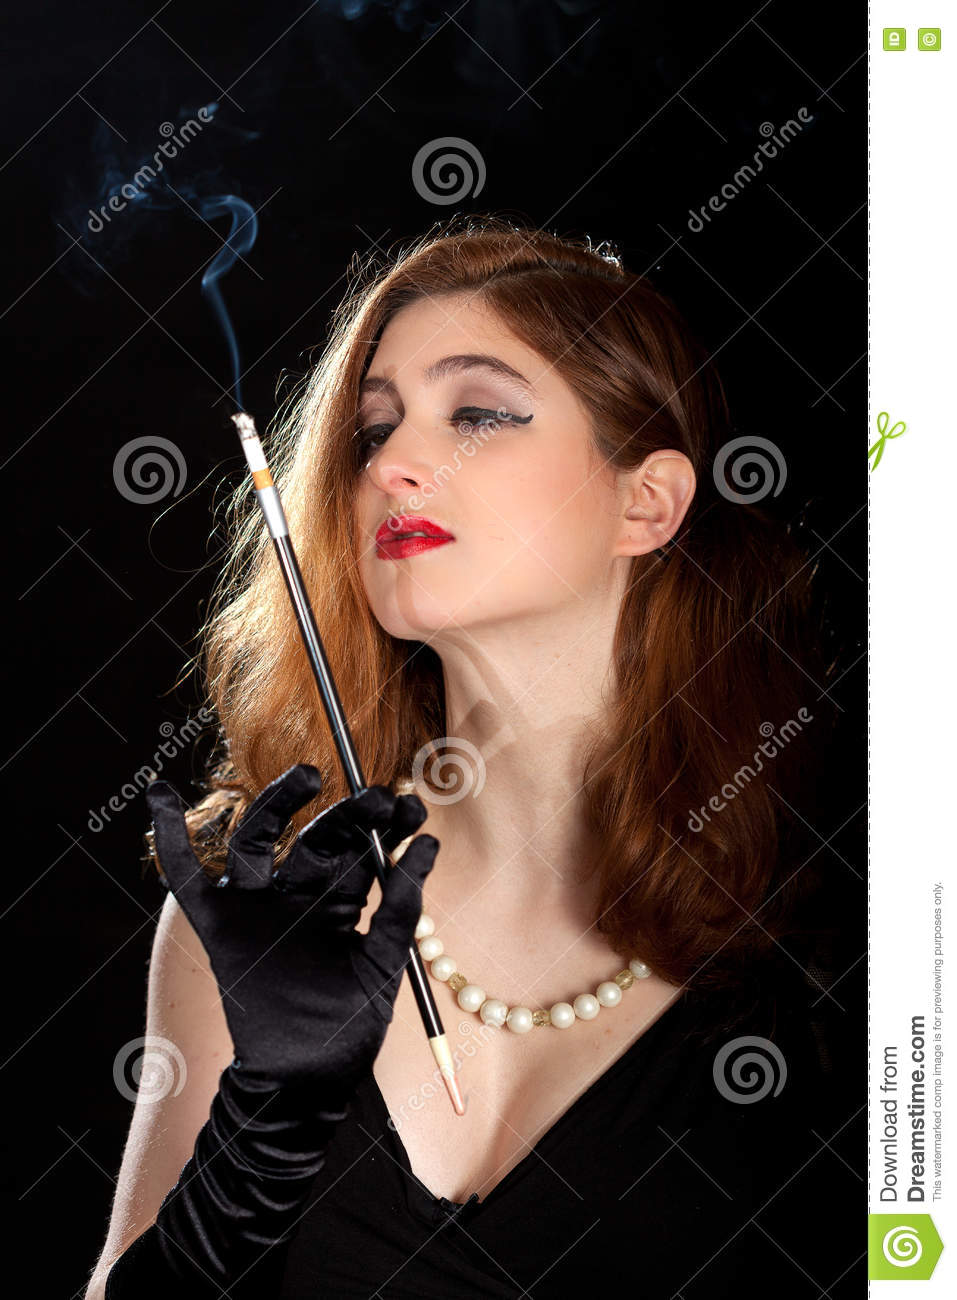 woman smoking film noir stock photo image 70527218